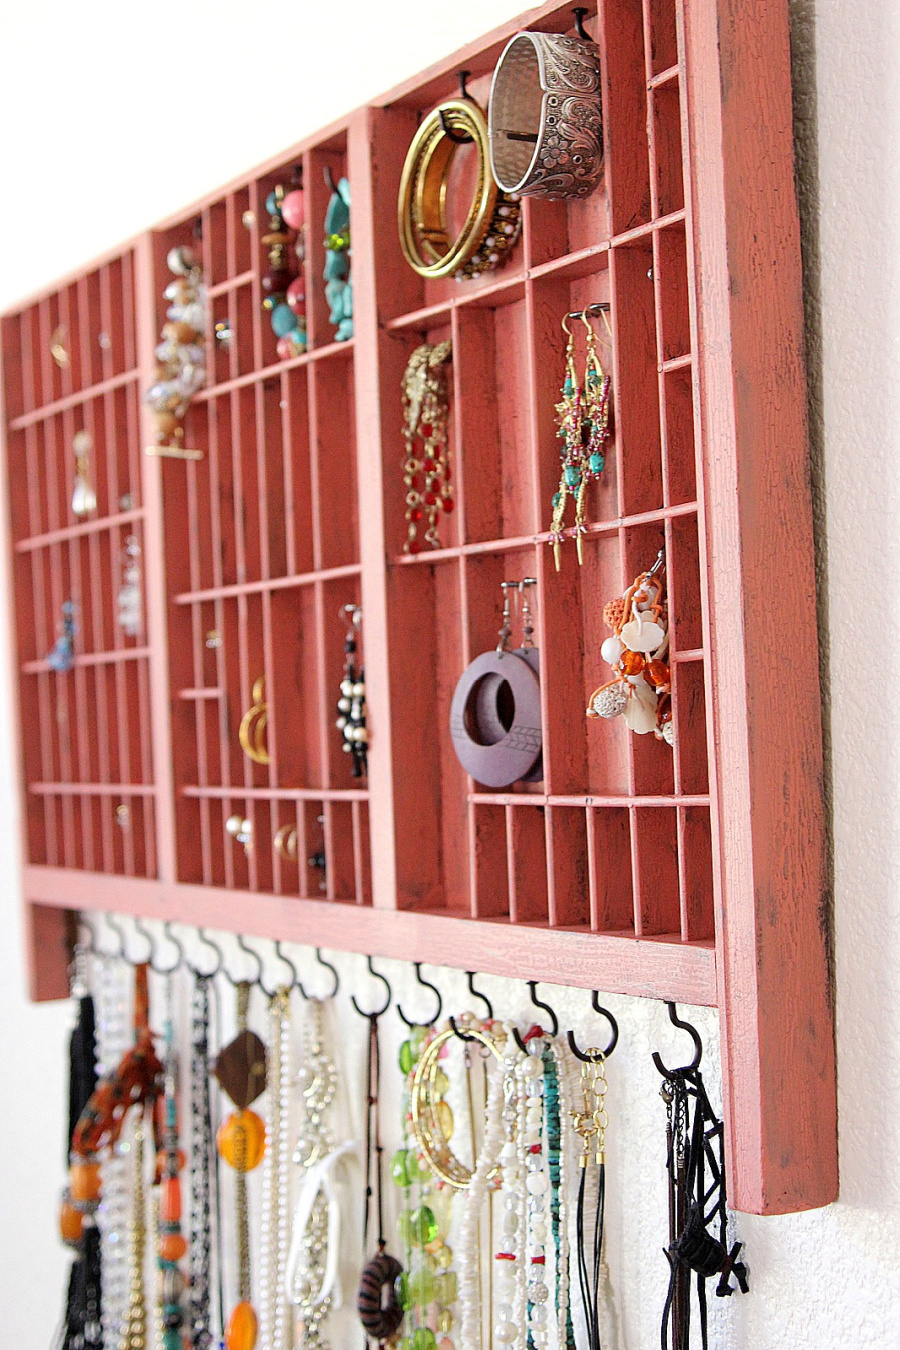 DIY wall jewelry organizer from a printer's typeset drawer.